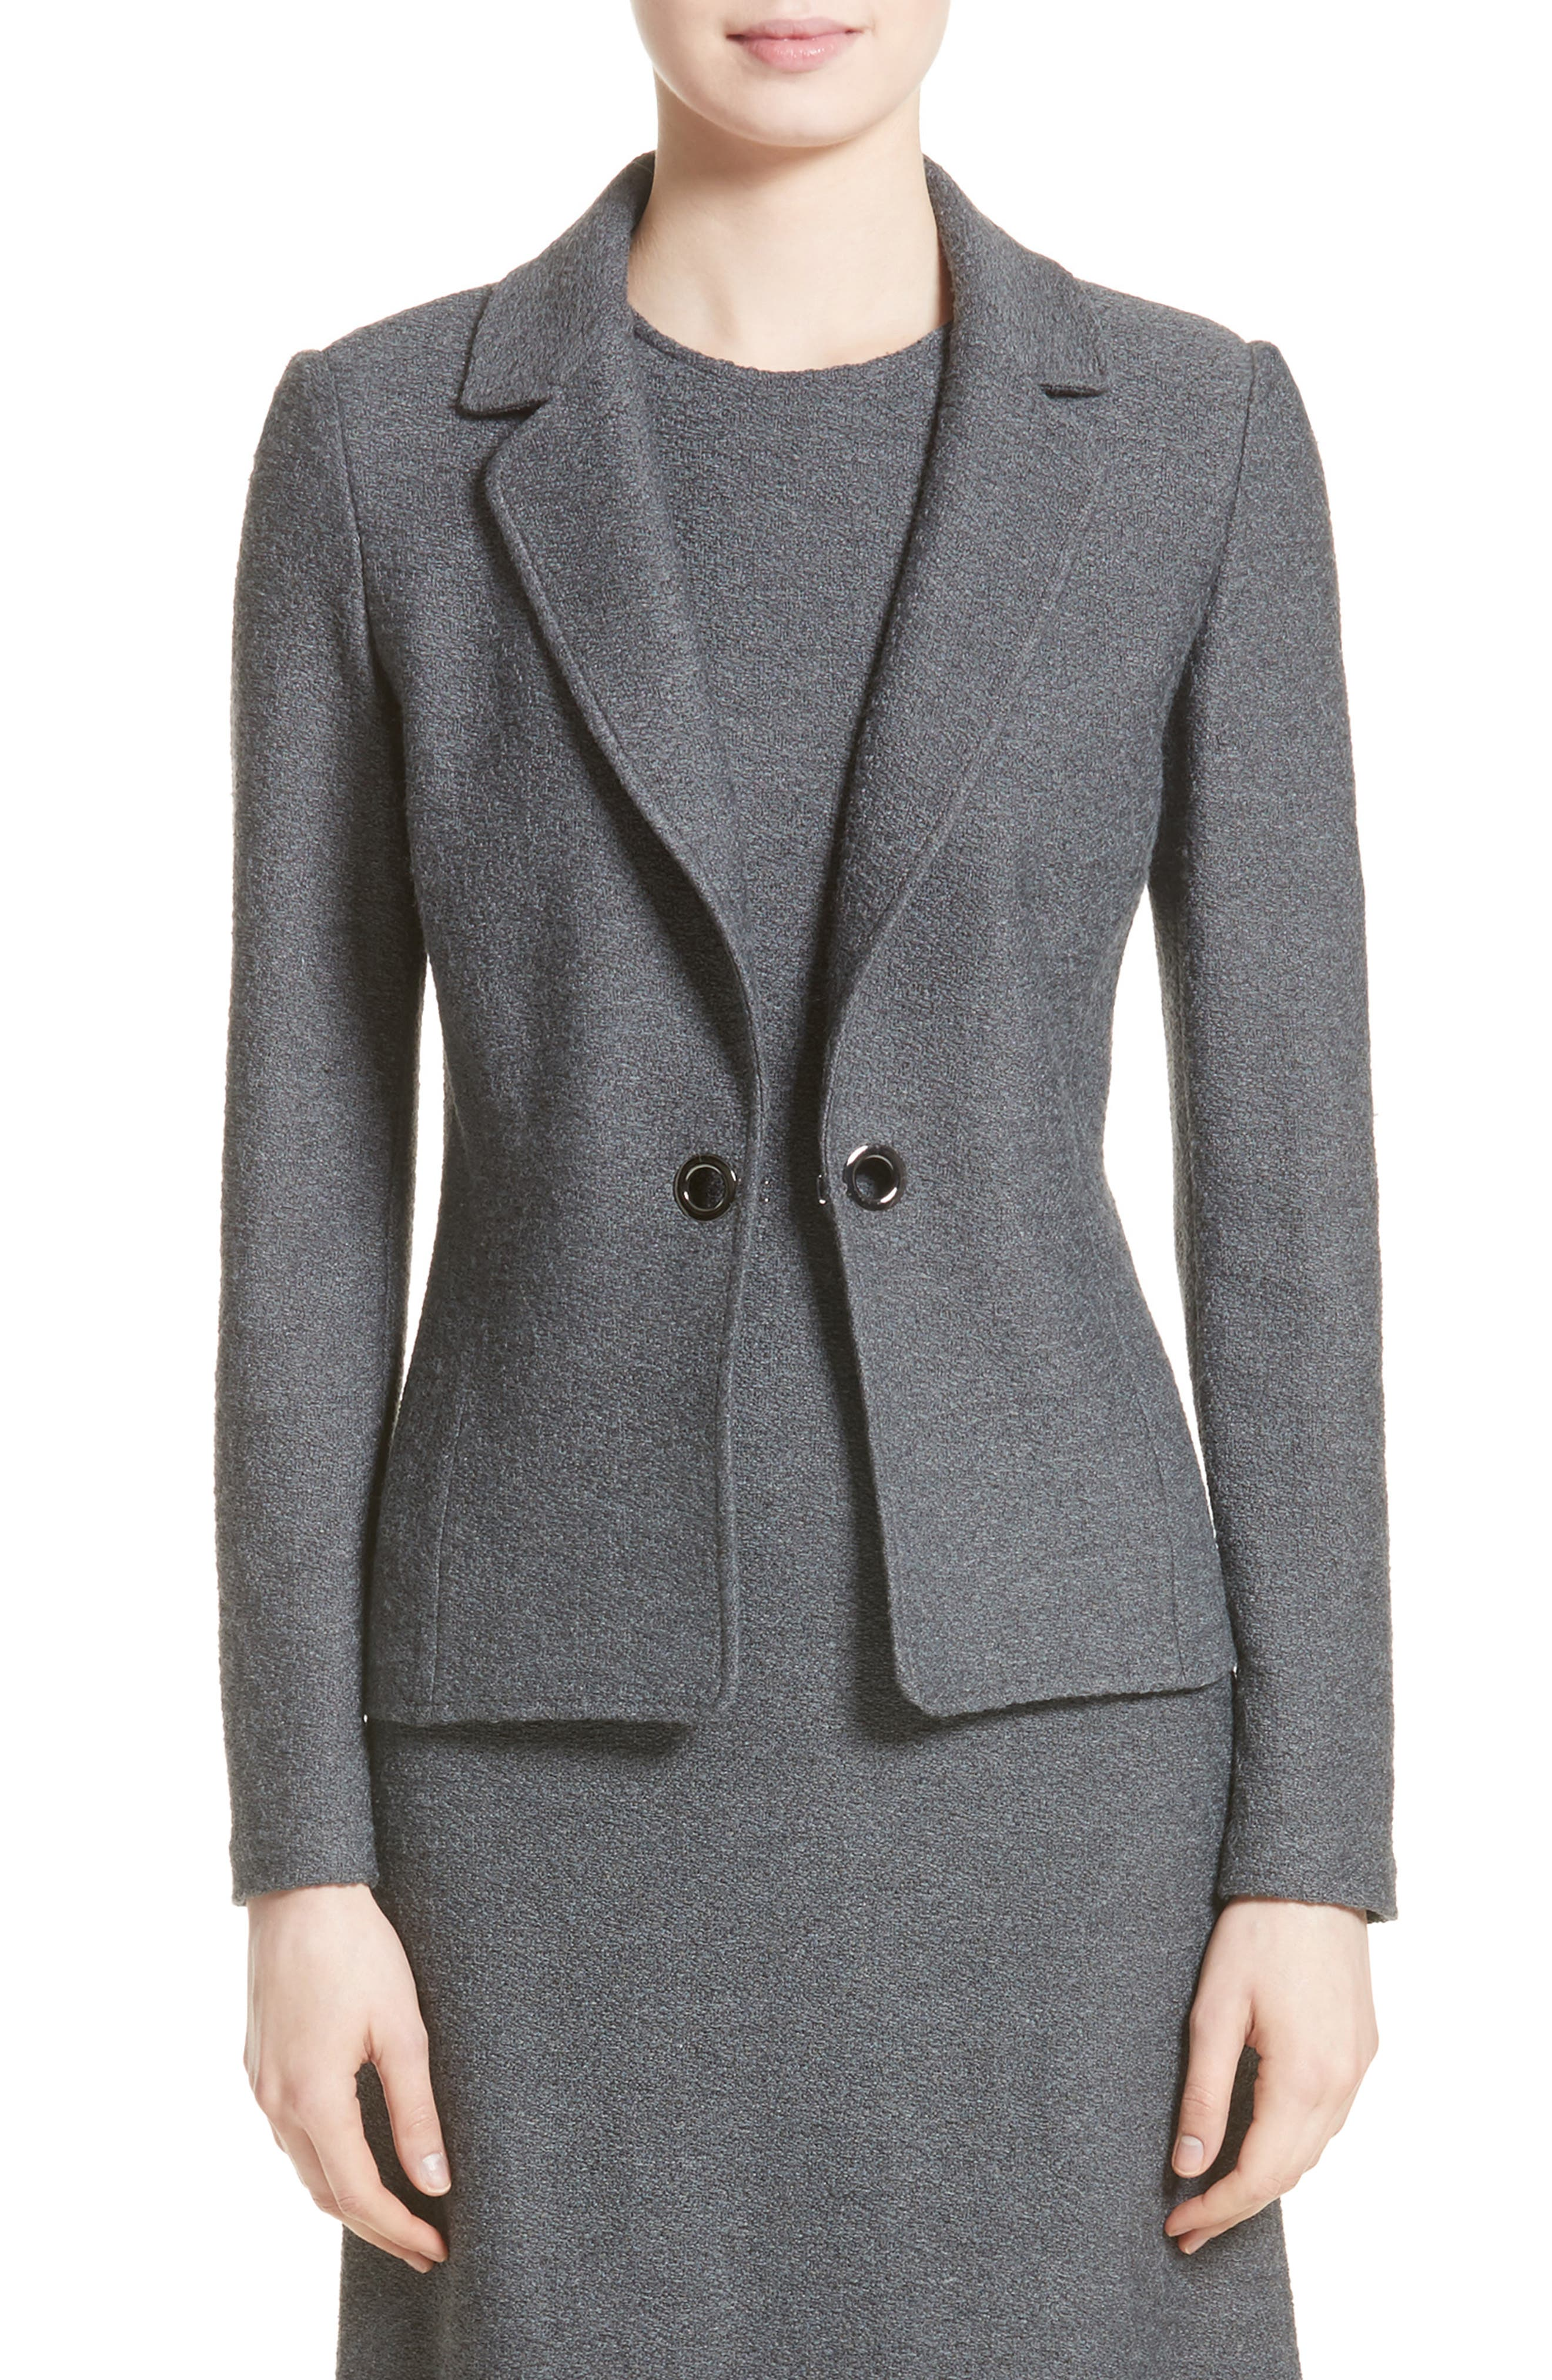 Main Image - St. John Collection Clair Grommet Detail Knit Jacket